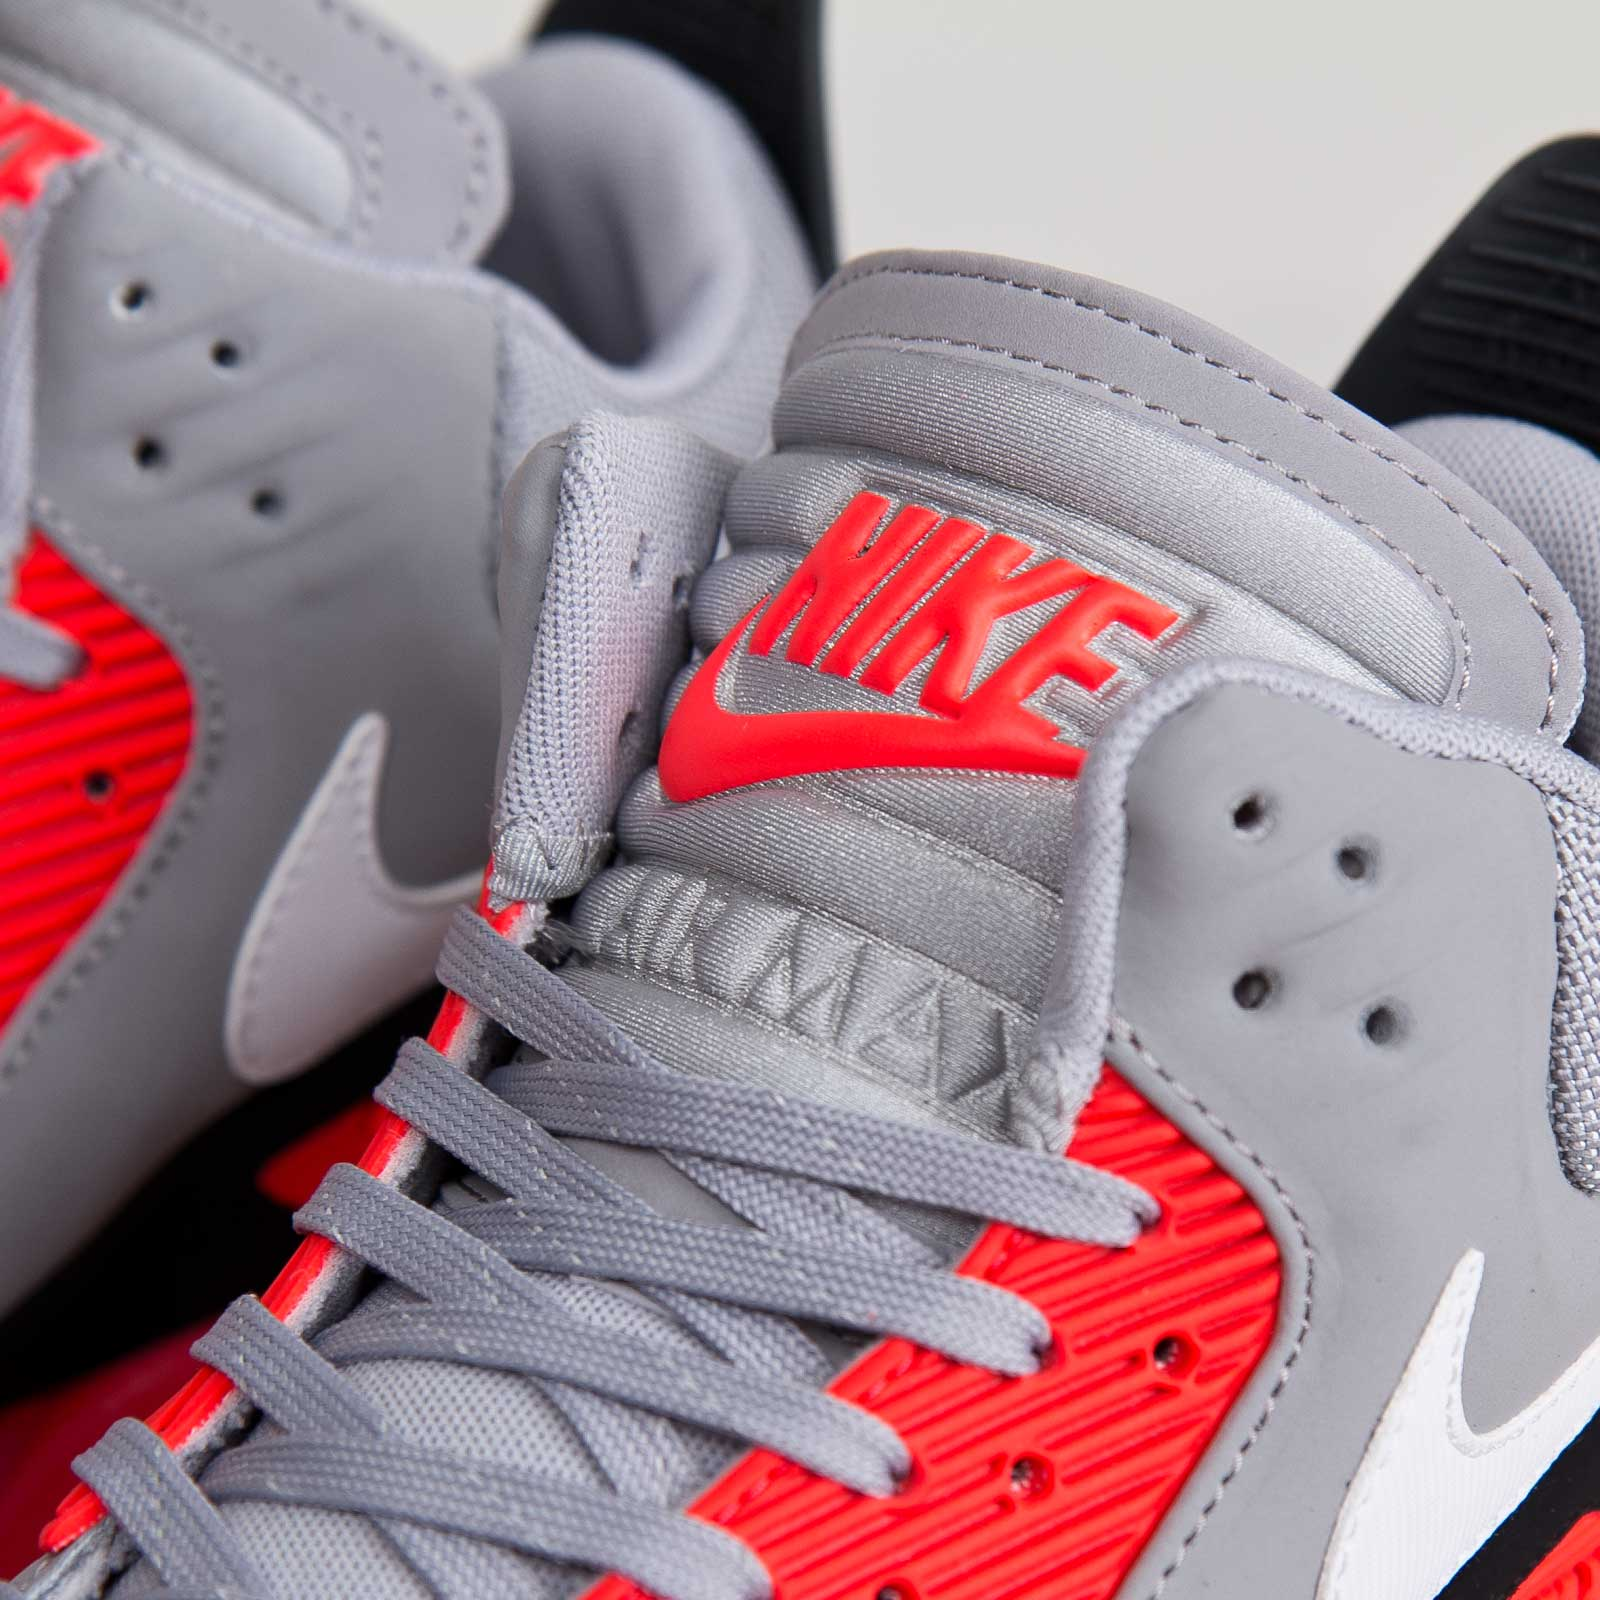 Nike Air Max 90s Sneakerboot Ice Wolf Grey Infrared